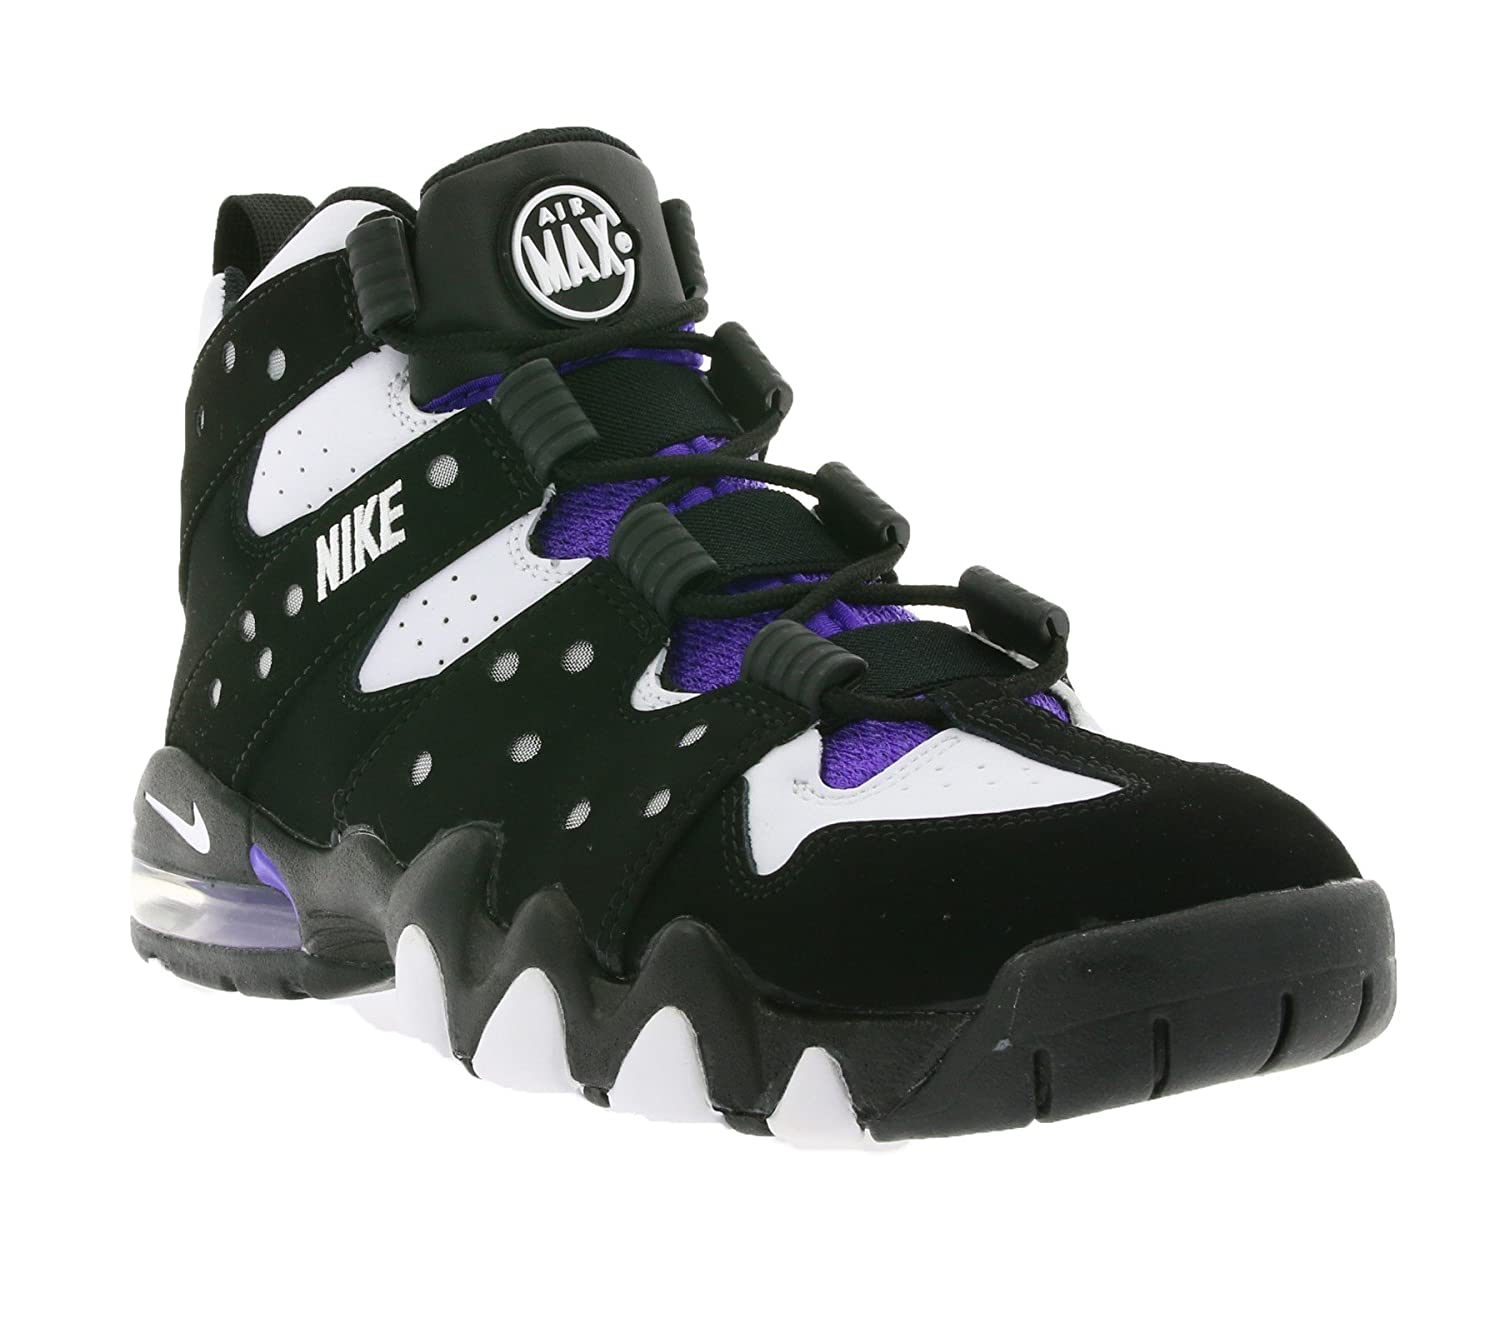 promo code for nike air max2 cb 94 royal bleu aaabe 6f447